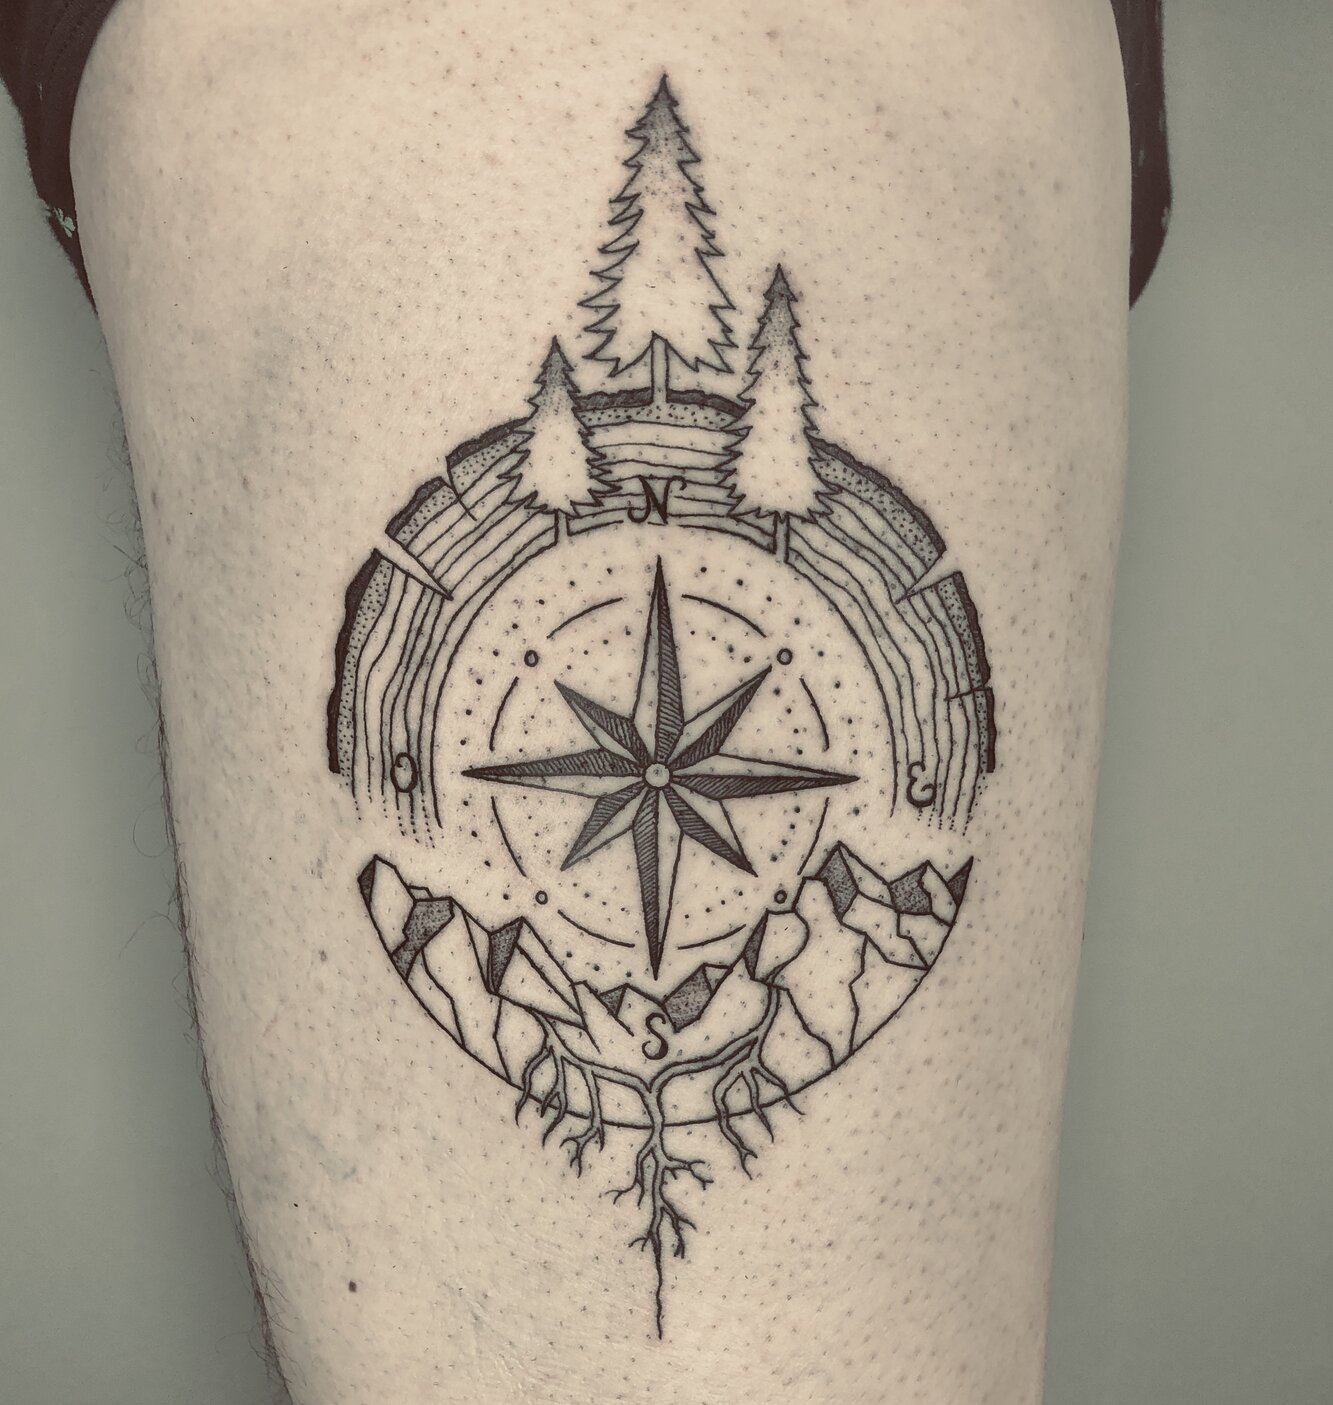 giufalia-tattoo-artist-compass-northstar